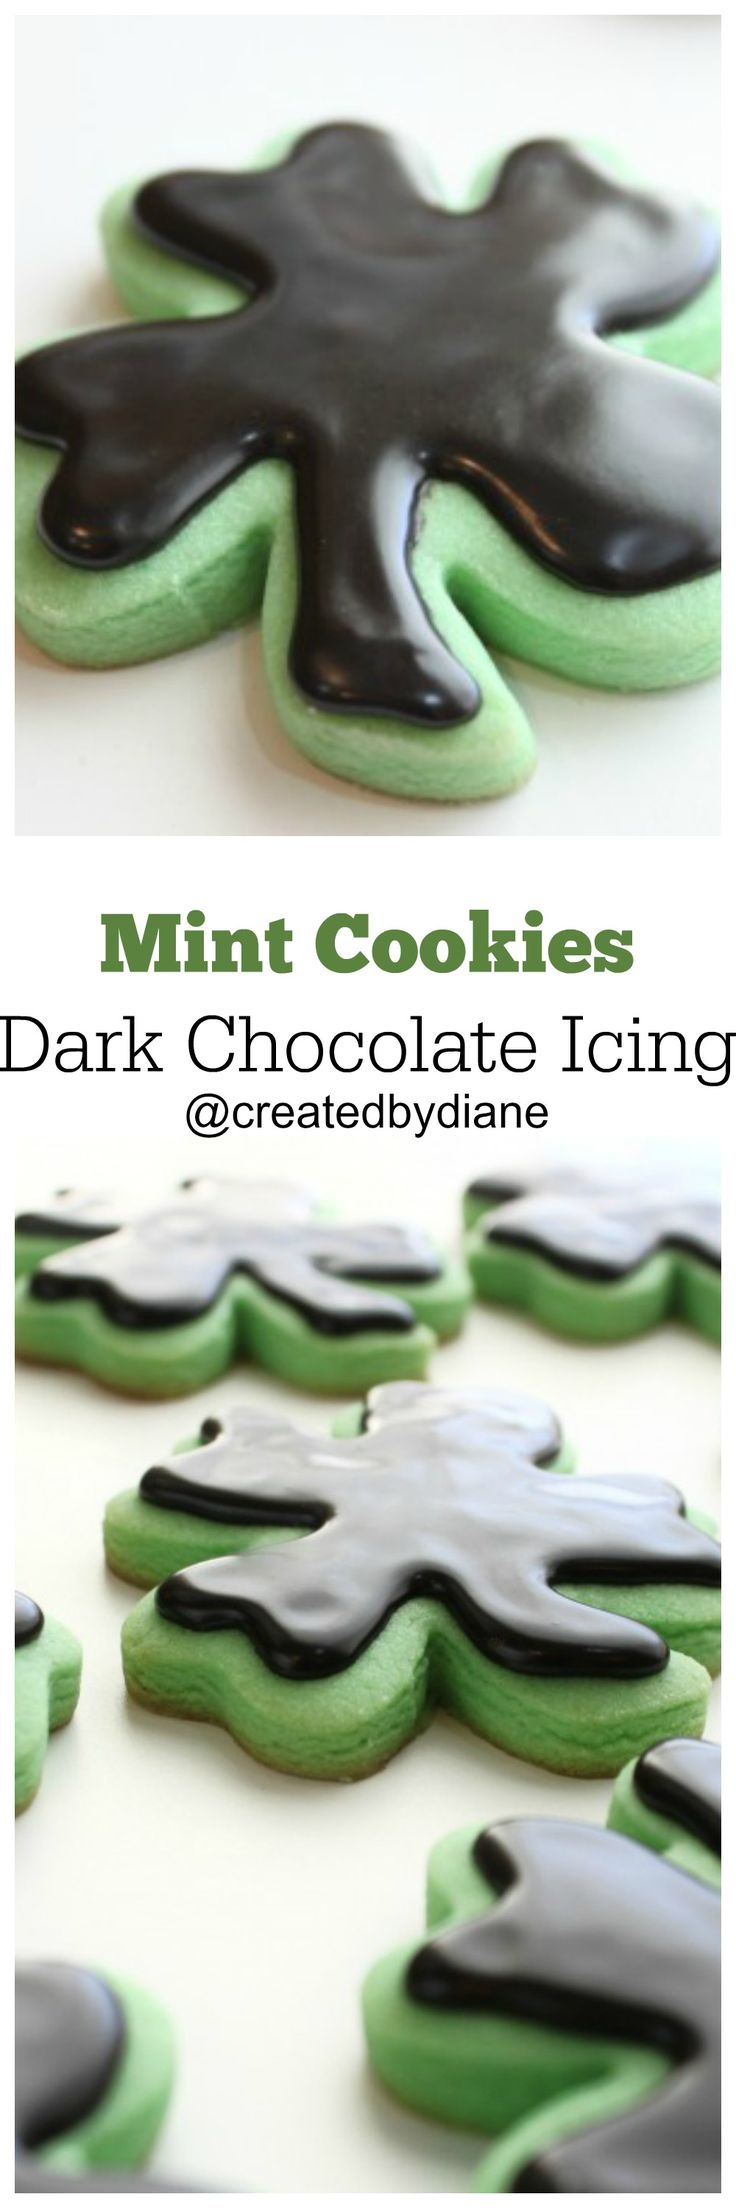 "Easy to make ""Thin Mint"" Cookies, with Dark Chocolate Glaze Icing. Mint green cut out sugar cookies with a dark chocolate icing that is smooth and delicious. www.createdby-diane.com"